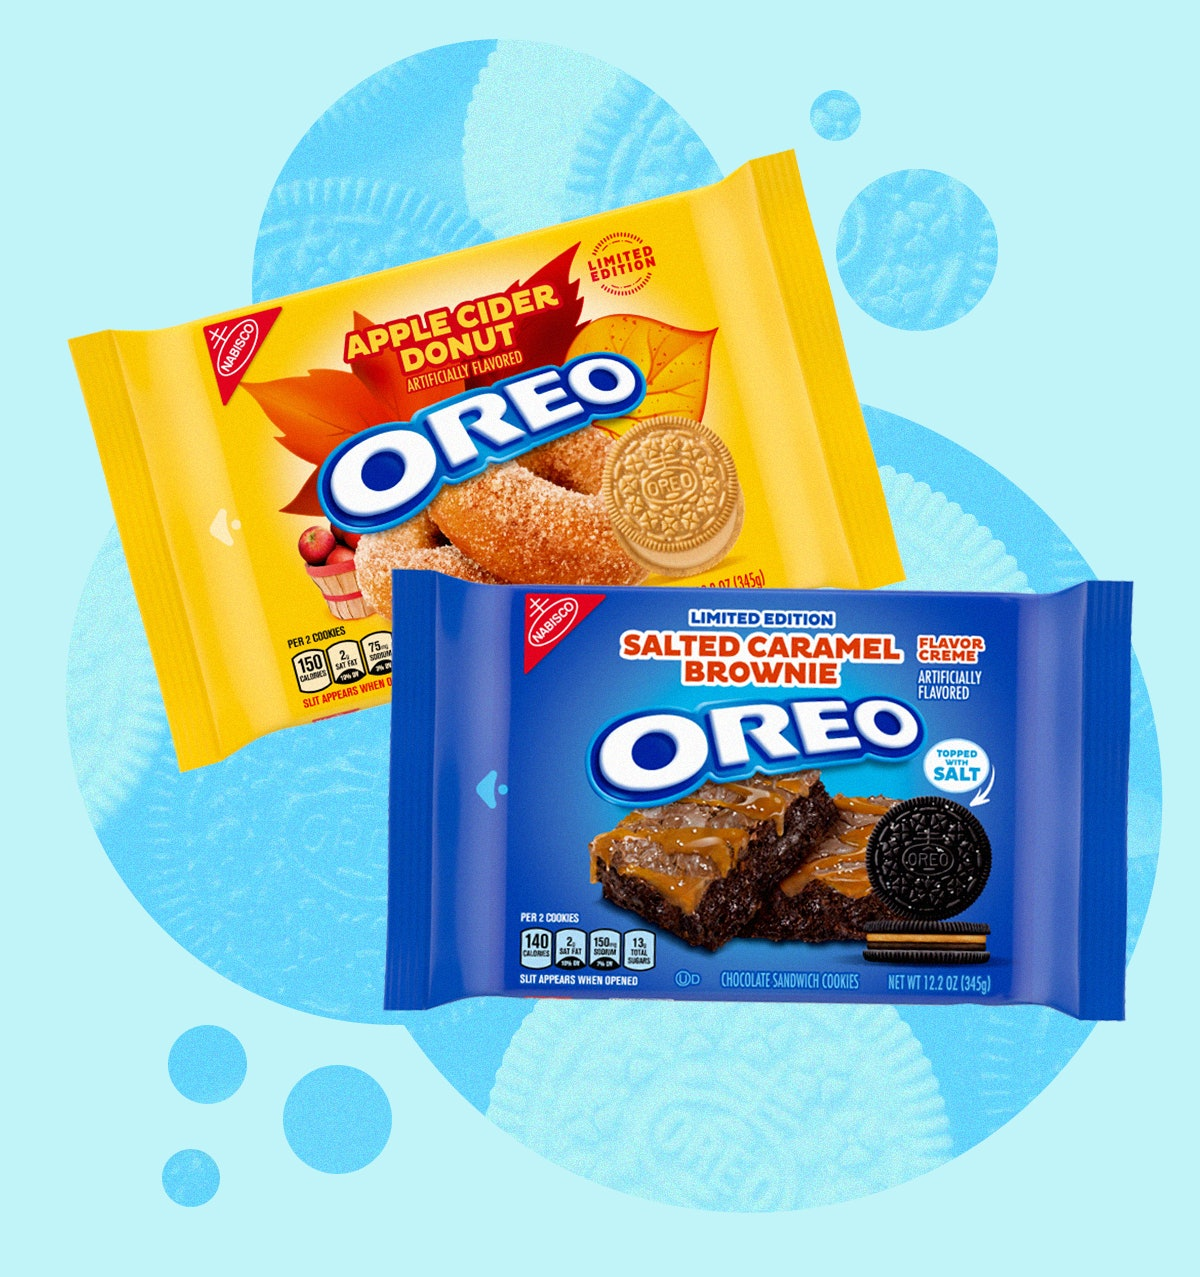 Here's what Apple Cider Donut and Salted Caramel Brownie Oreos taste like.